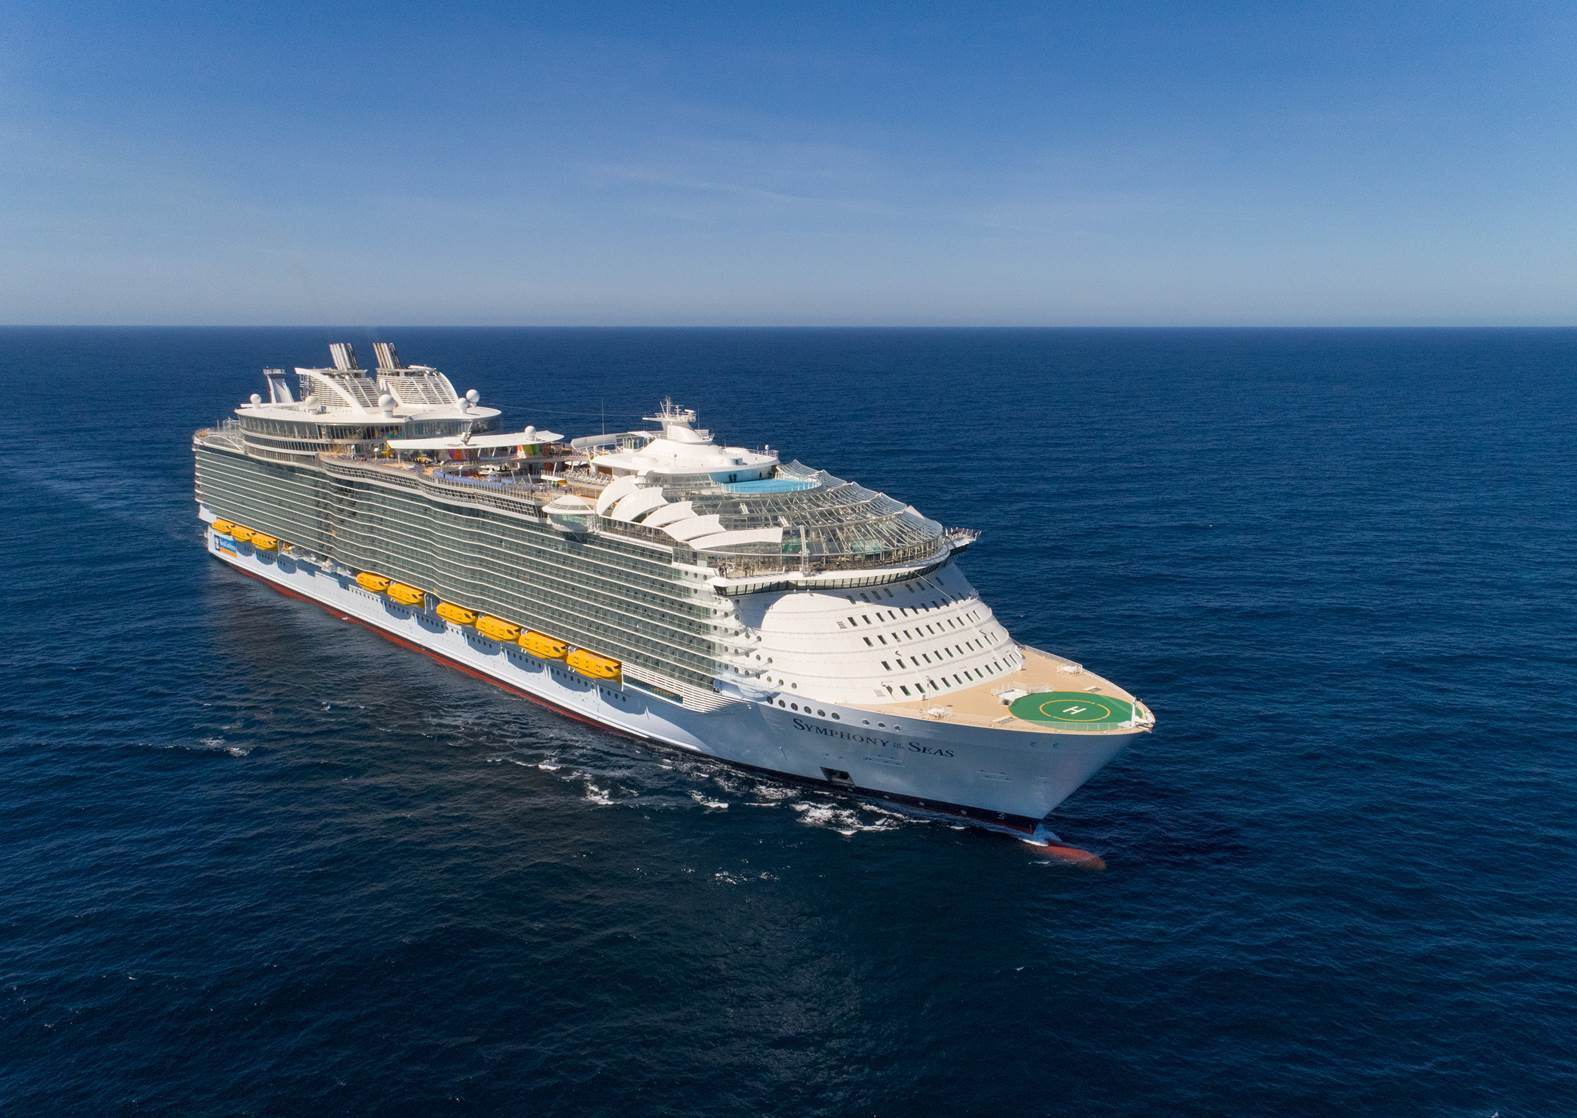 Cruise smackdown: Royal Caribbean's Symphony of the Seas vs. Norwegian Bliss | USA Today